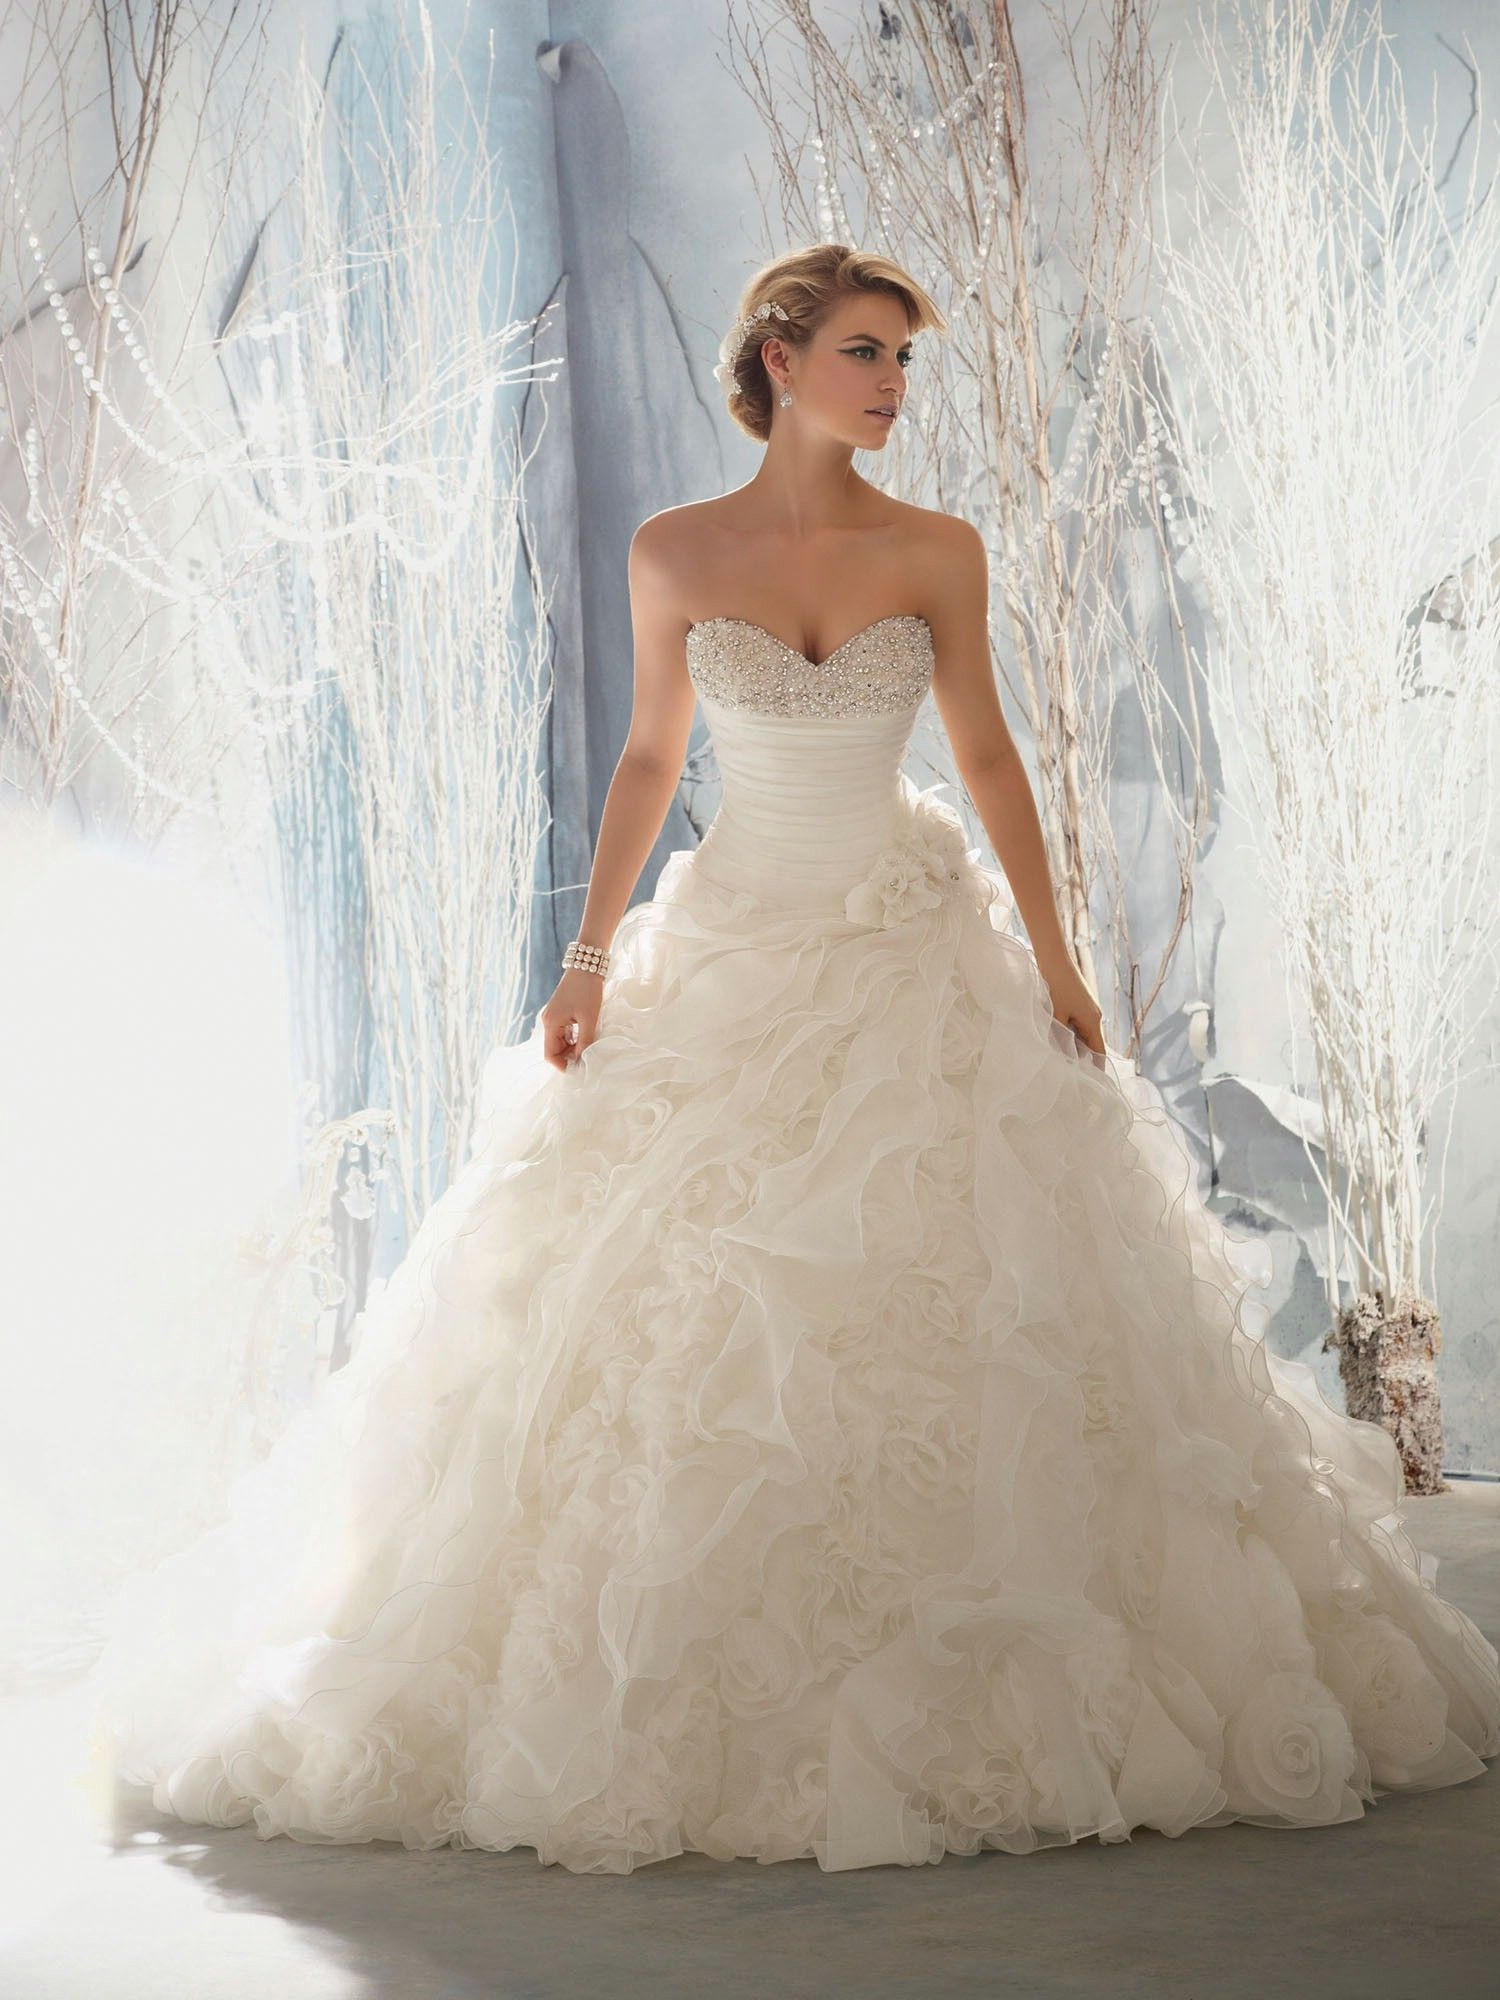 Home | Mori lee wedding dresses, Wedding background and Mori lee